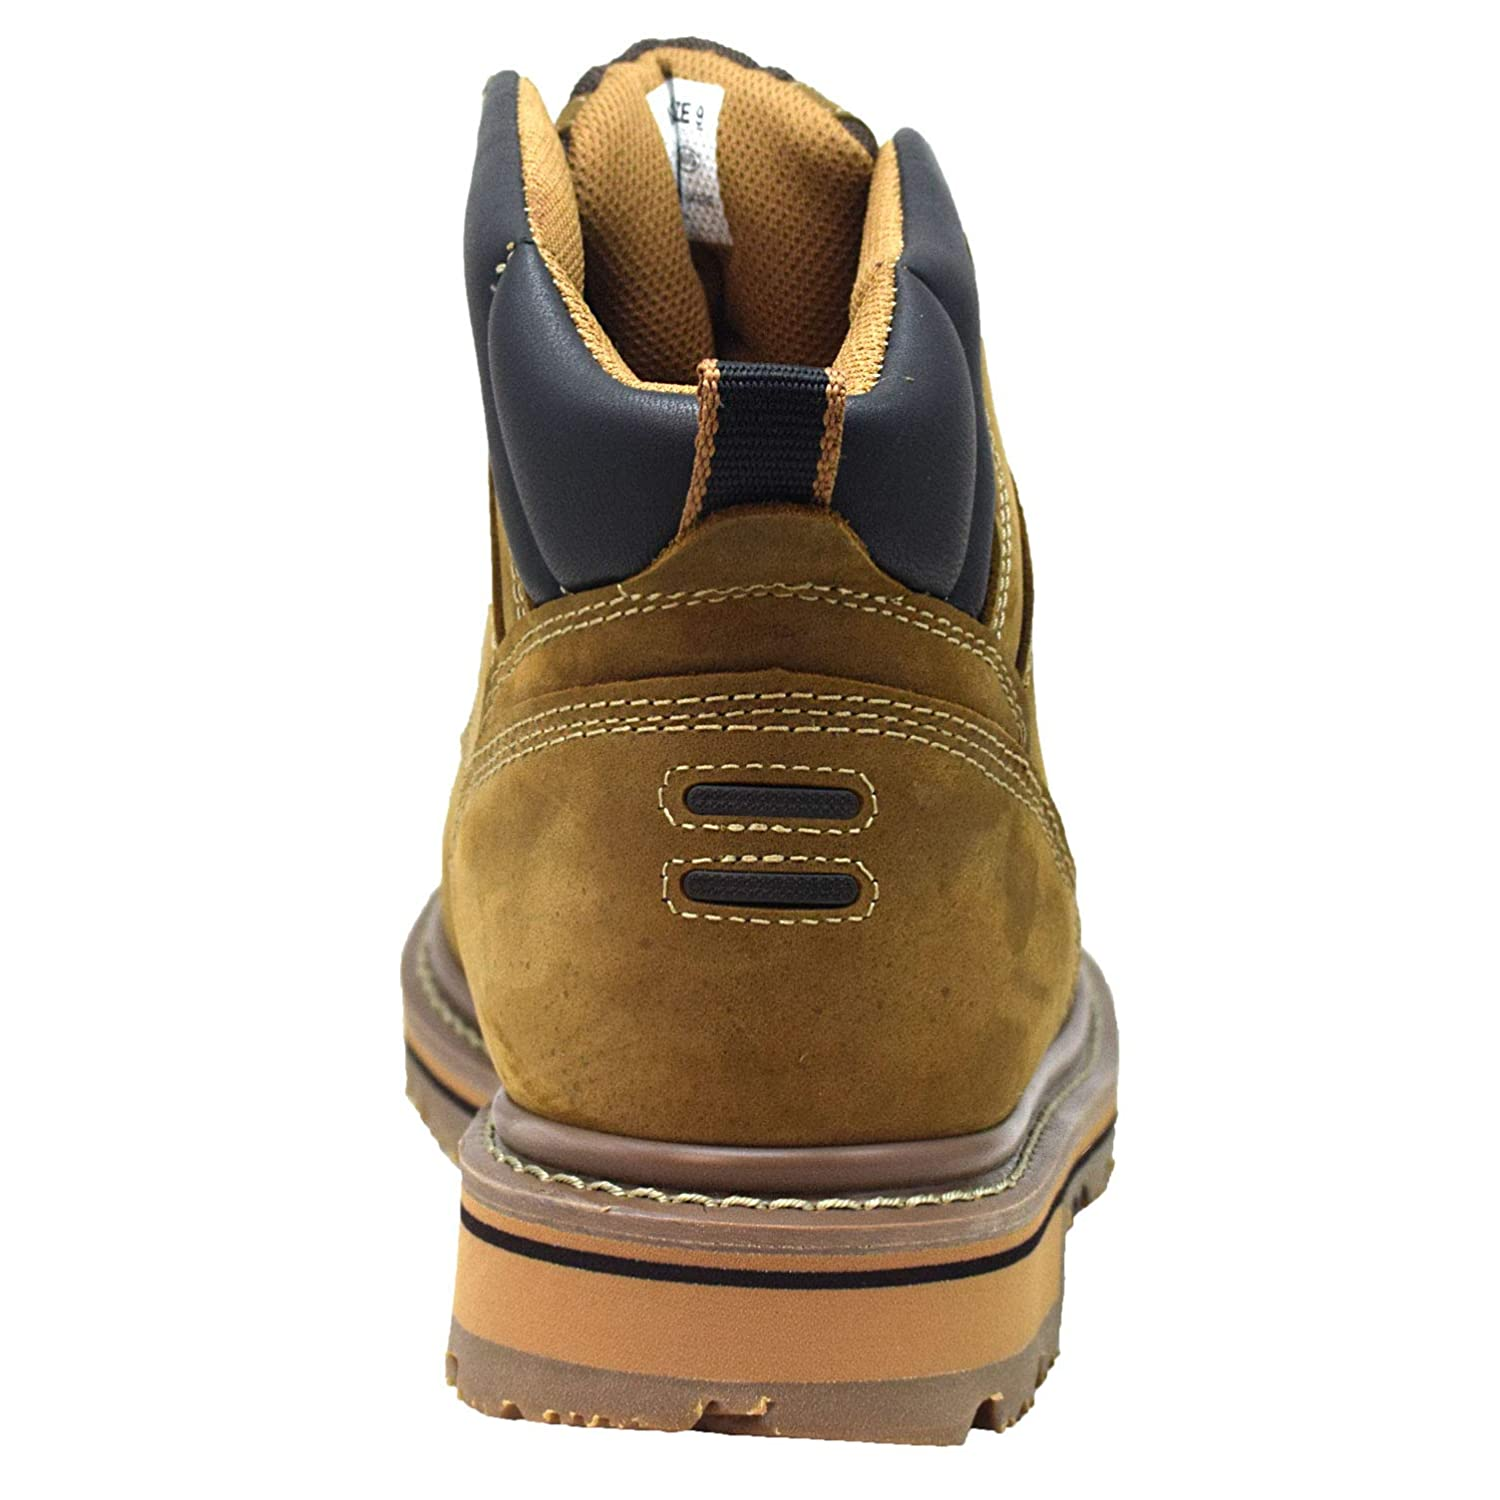 King Rocks Waterproof Work Boots Mens 6 Boot for Contstruction with 3M Thinsulate Insulation